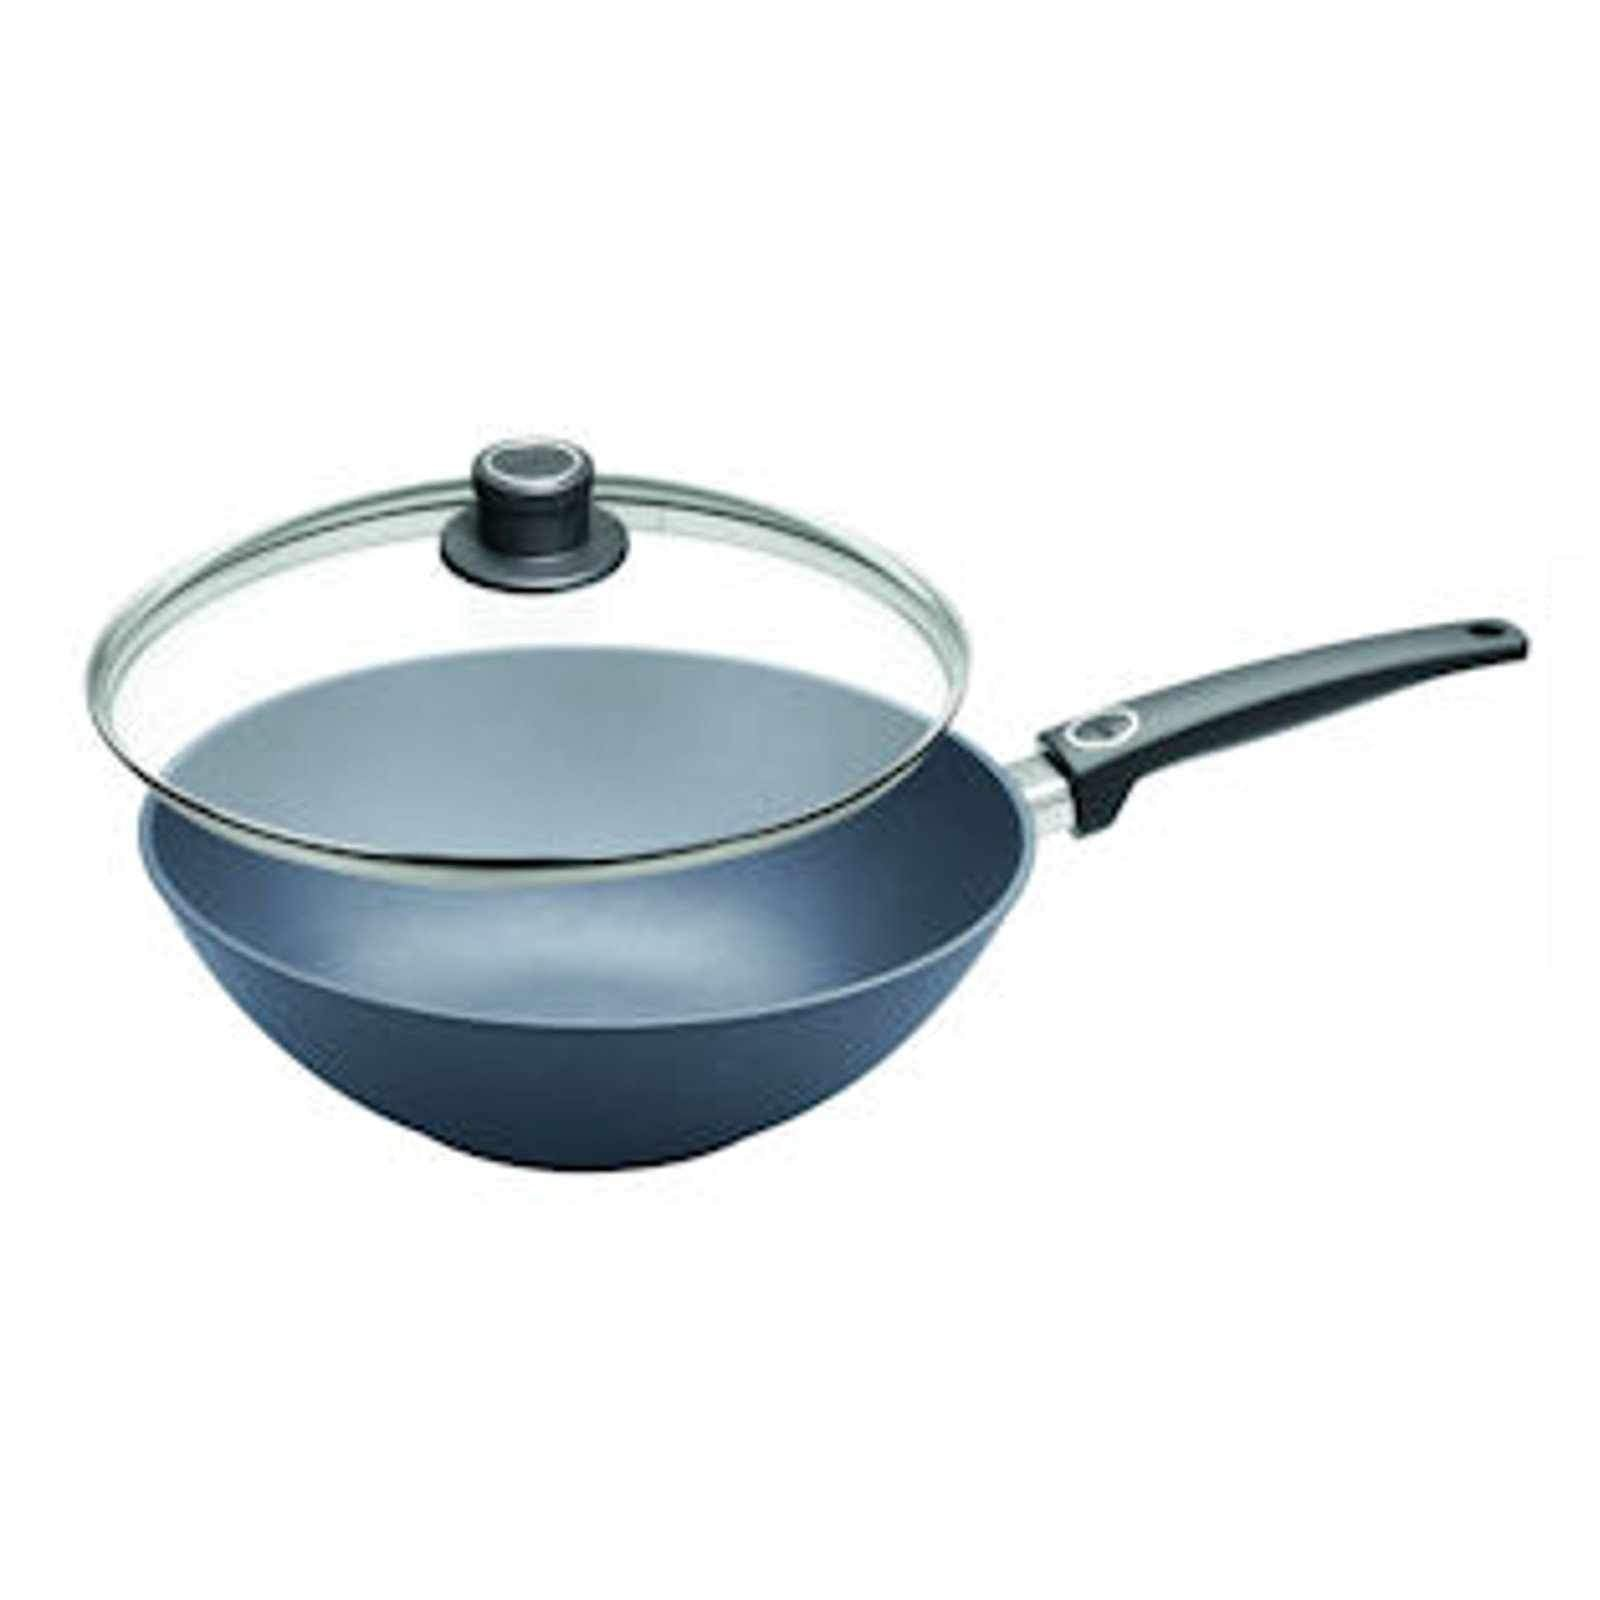 Woll Saphir Lite Induction Wok Pan with Lid 30cm (RRP $320)-wok-Chef's Quality Cookware